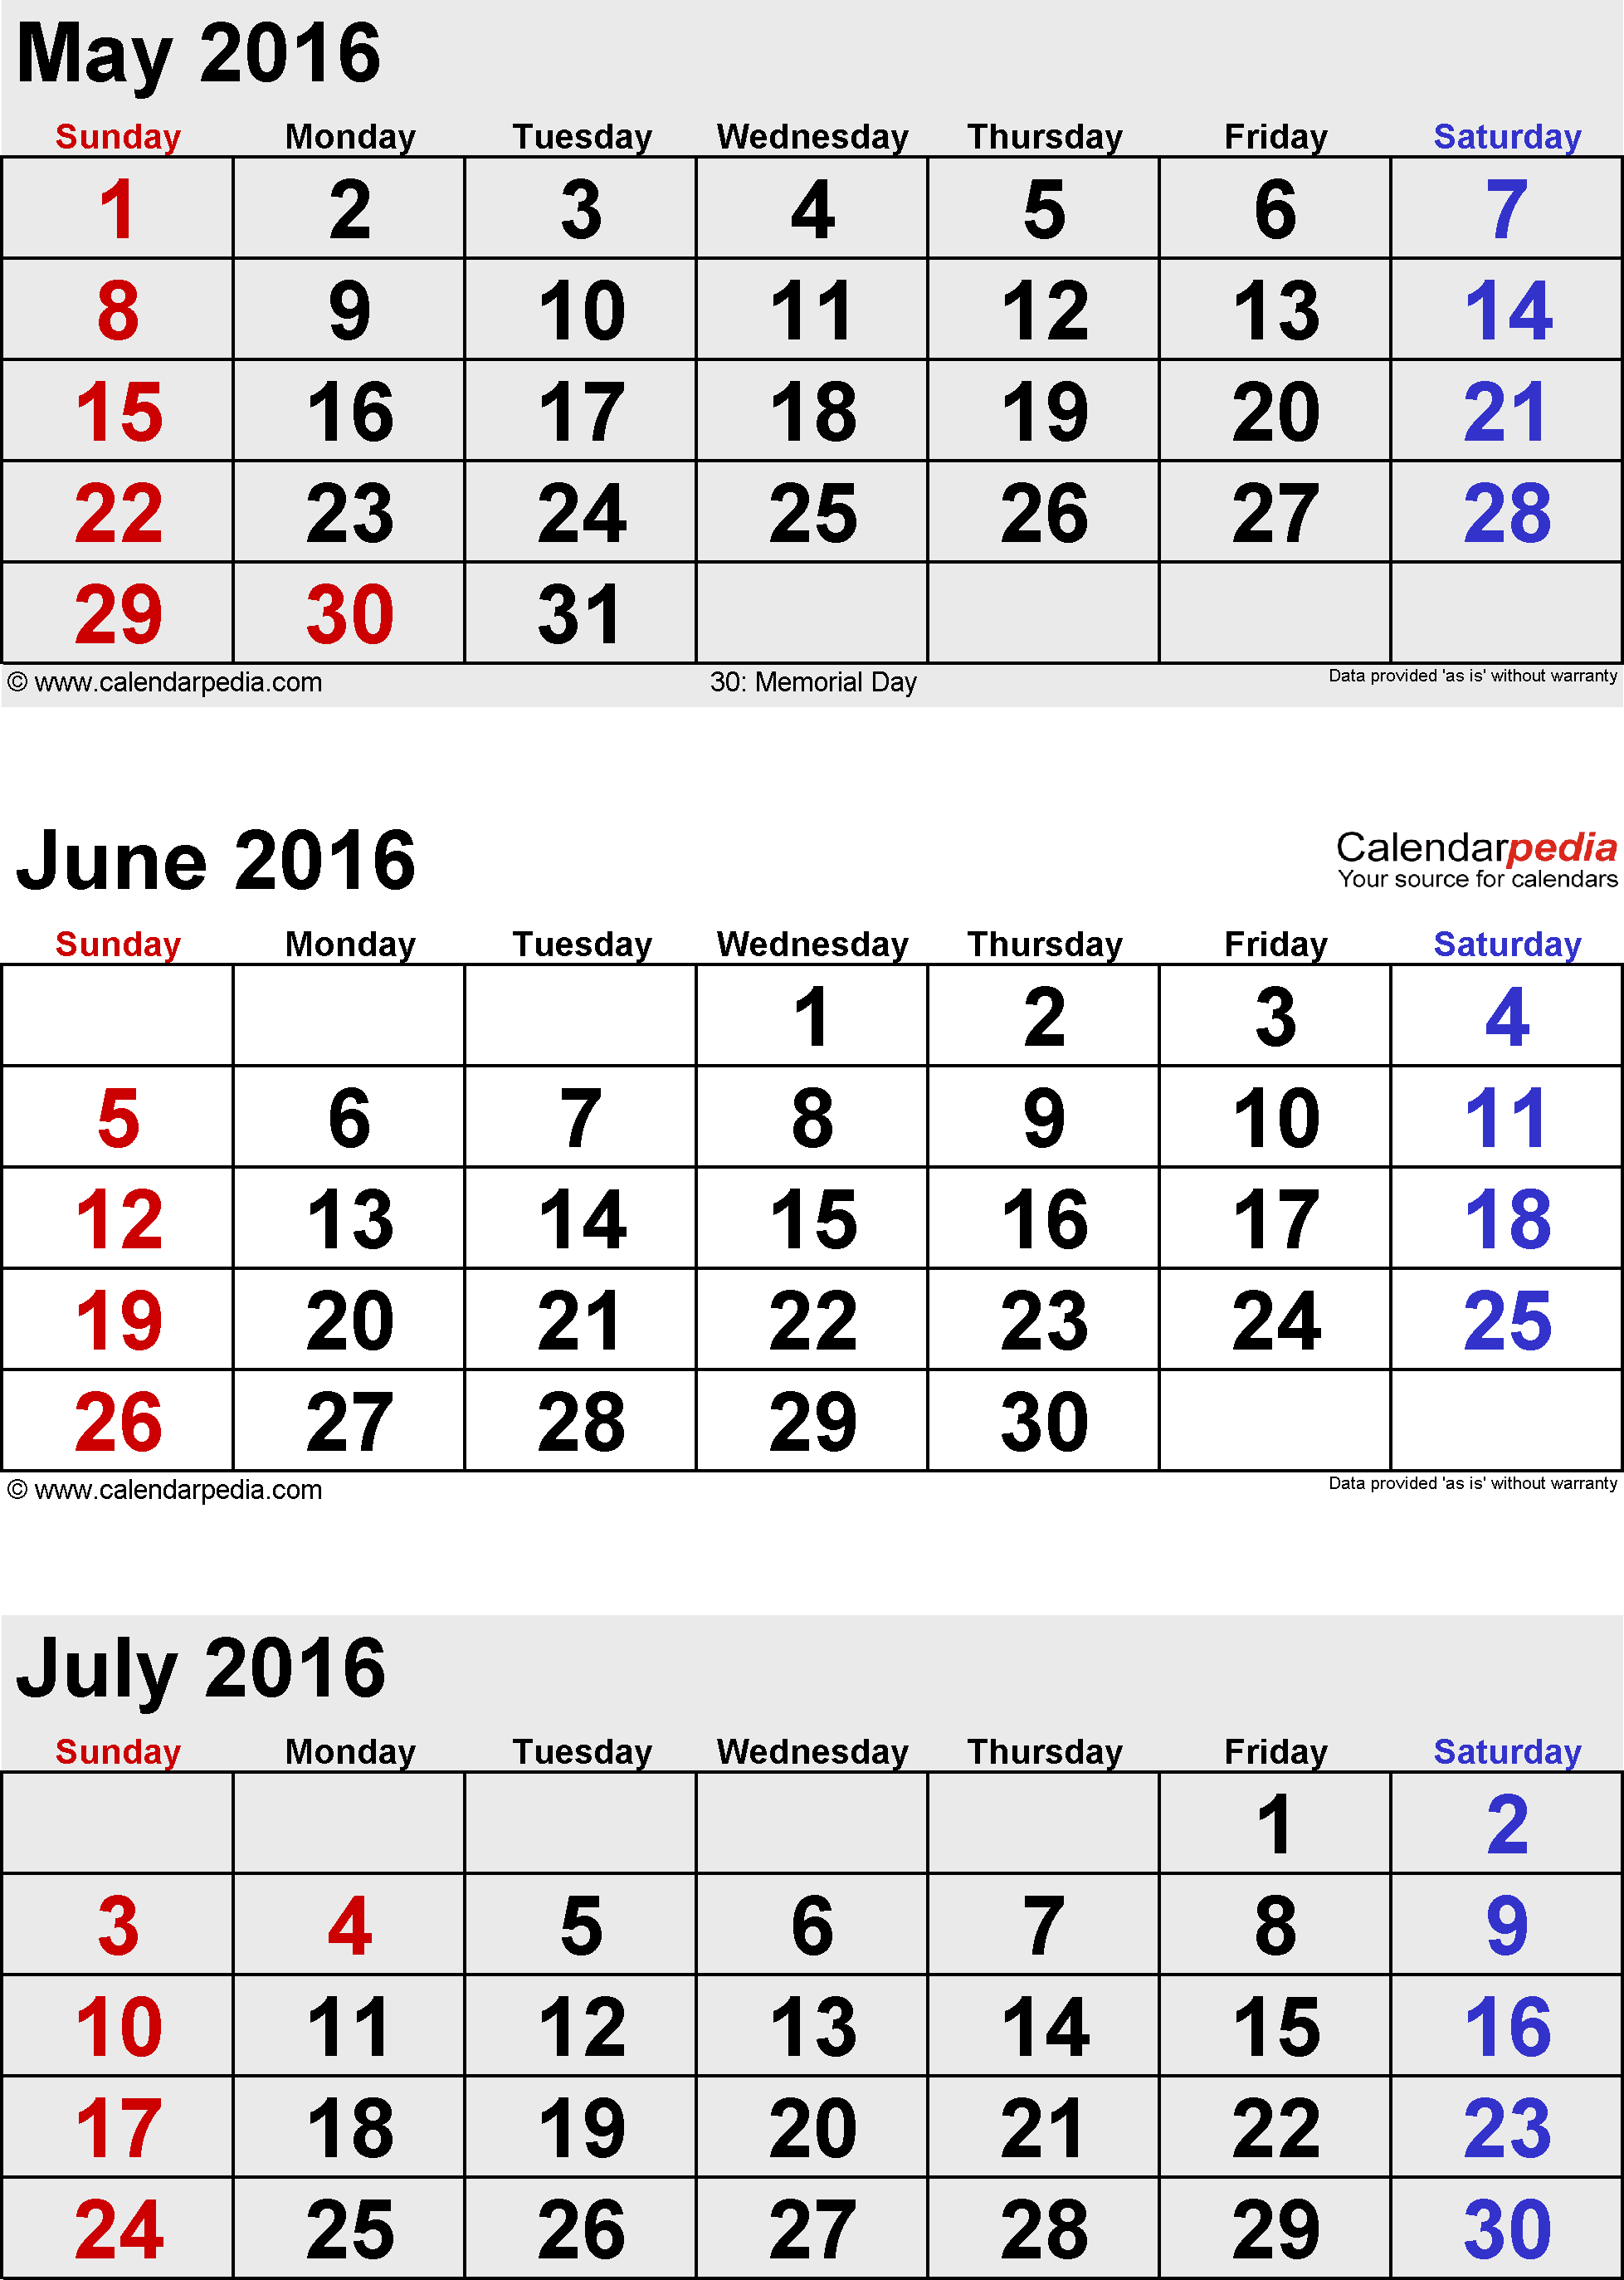 3 months calendar June/July/August 2016 in portrait format